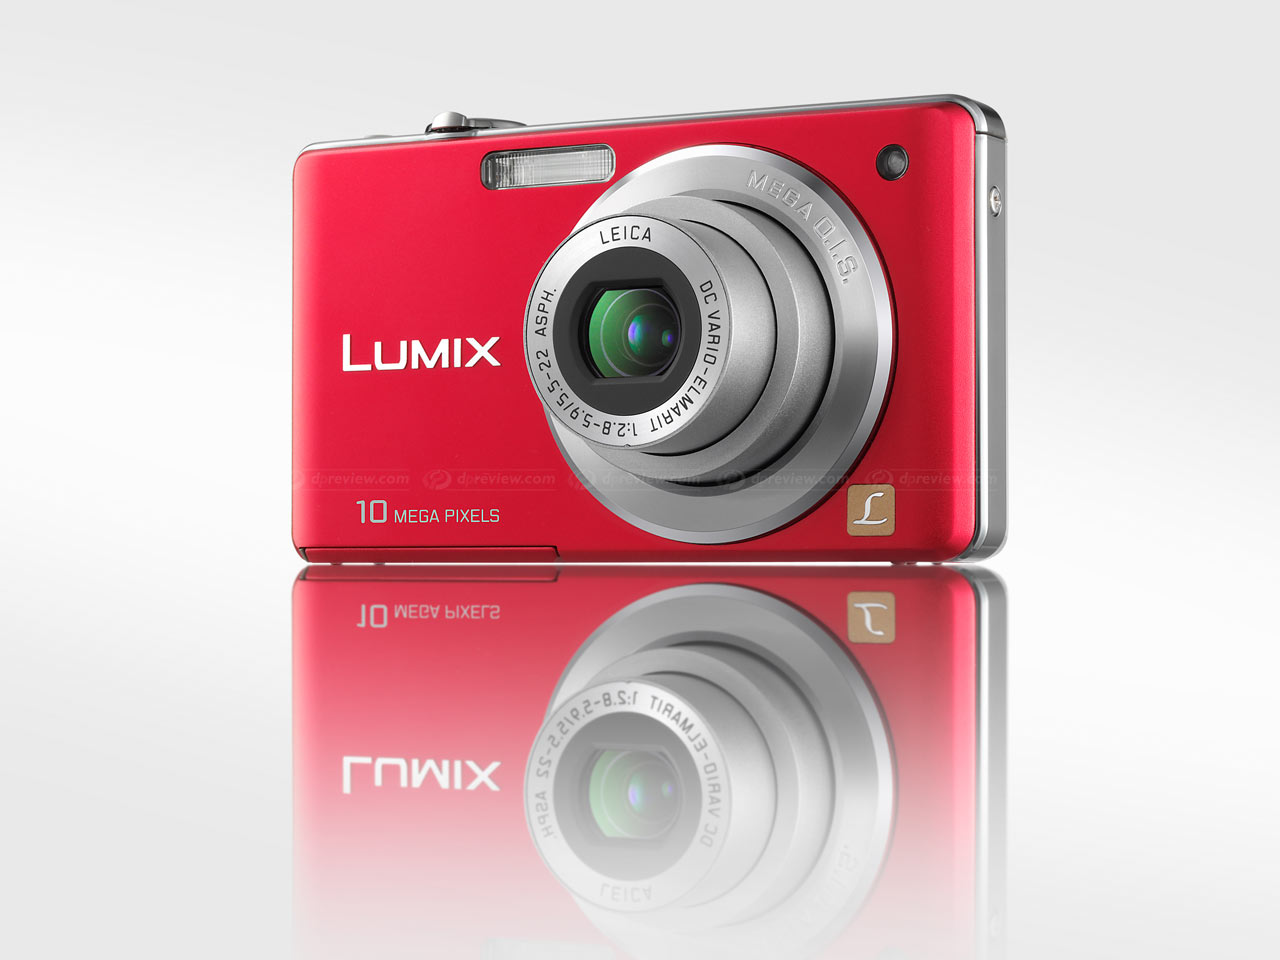 PANASONIC DMC-FS42 DIGITAL CAMERA WINDOWS 8.1 DRIVER DOWNLOAD